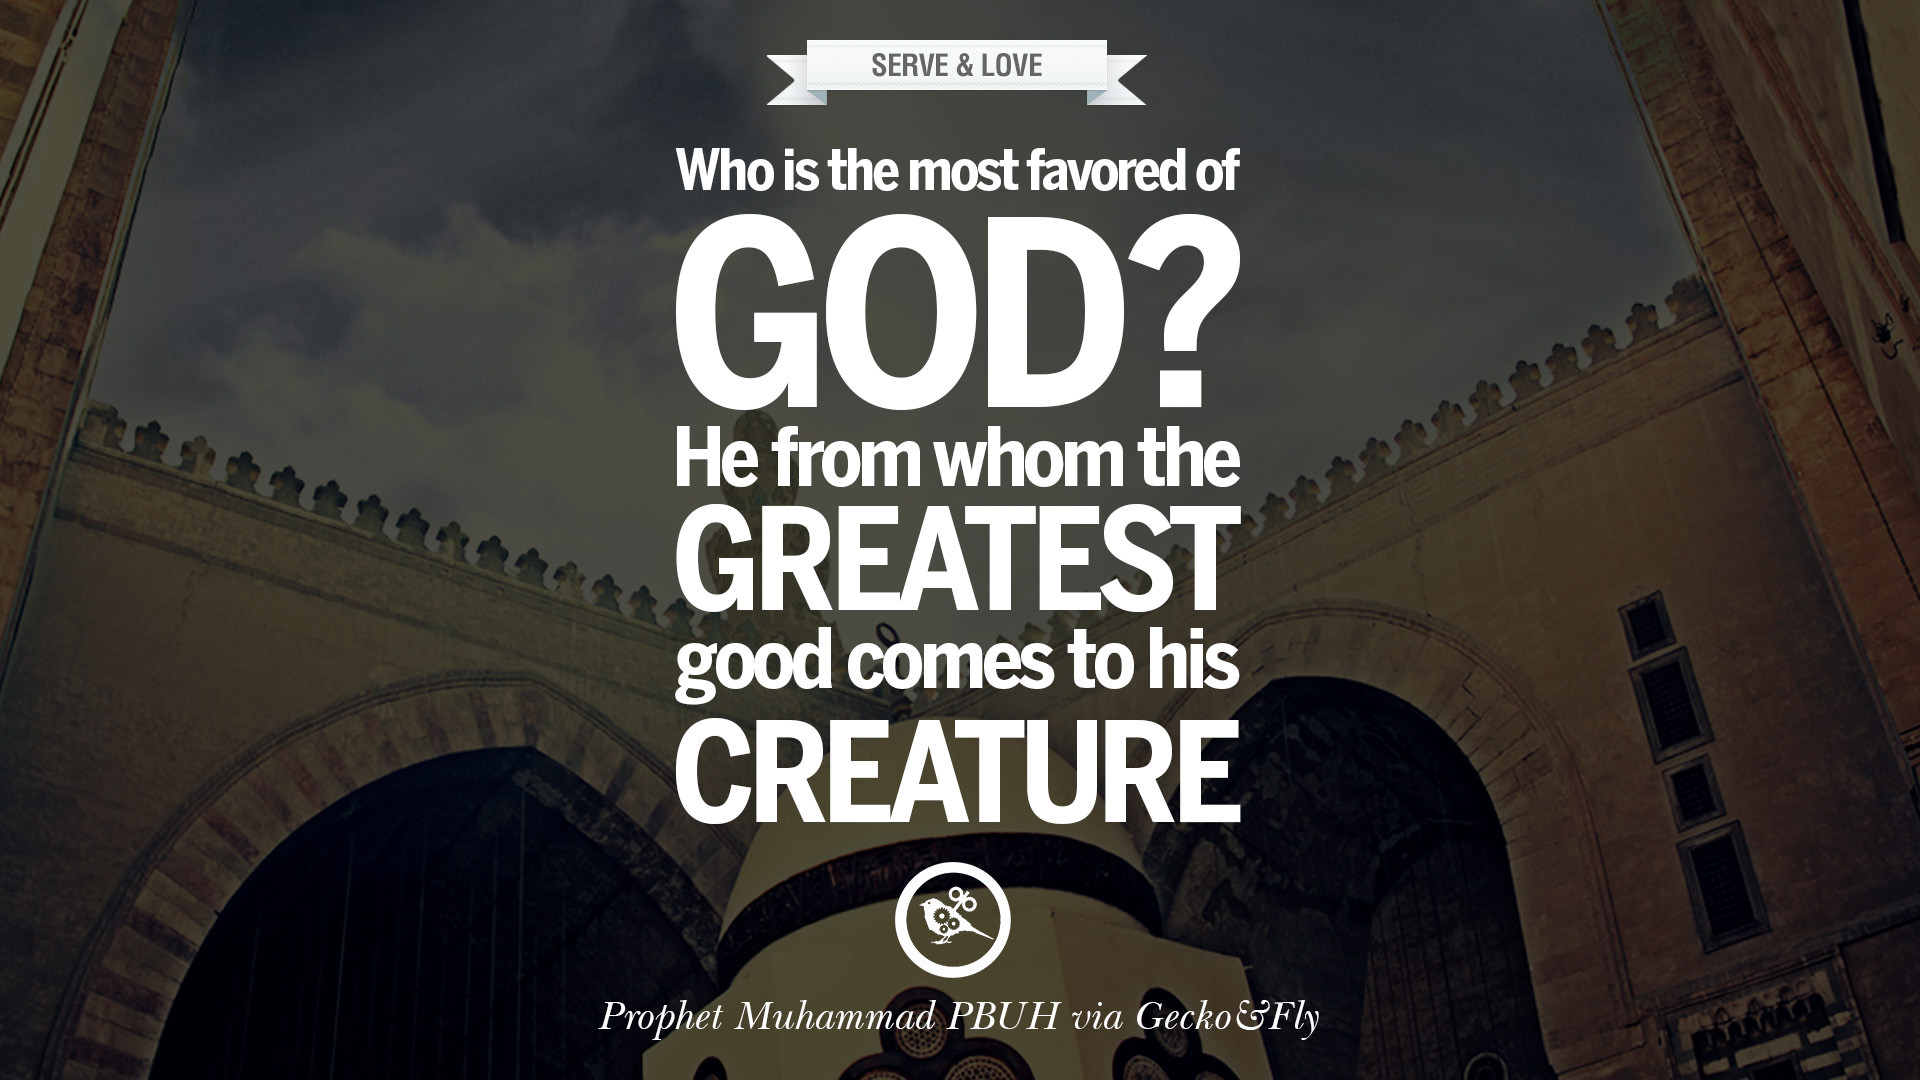 Who is the most favored of god he from whom the greatest good comes to his creature